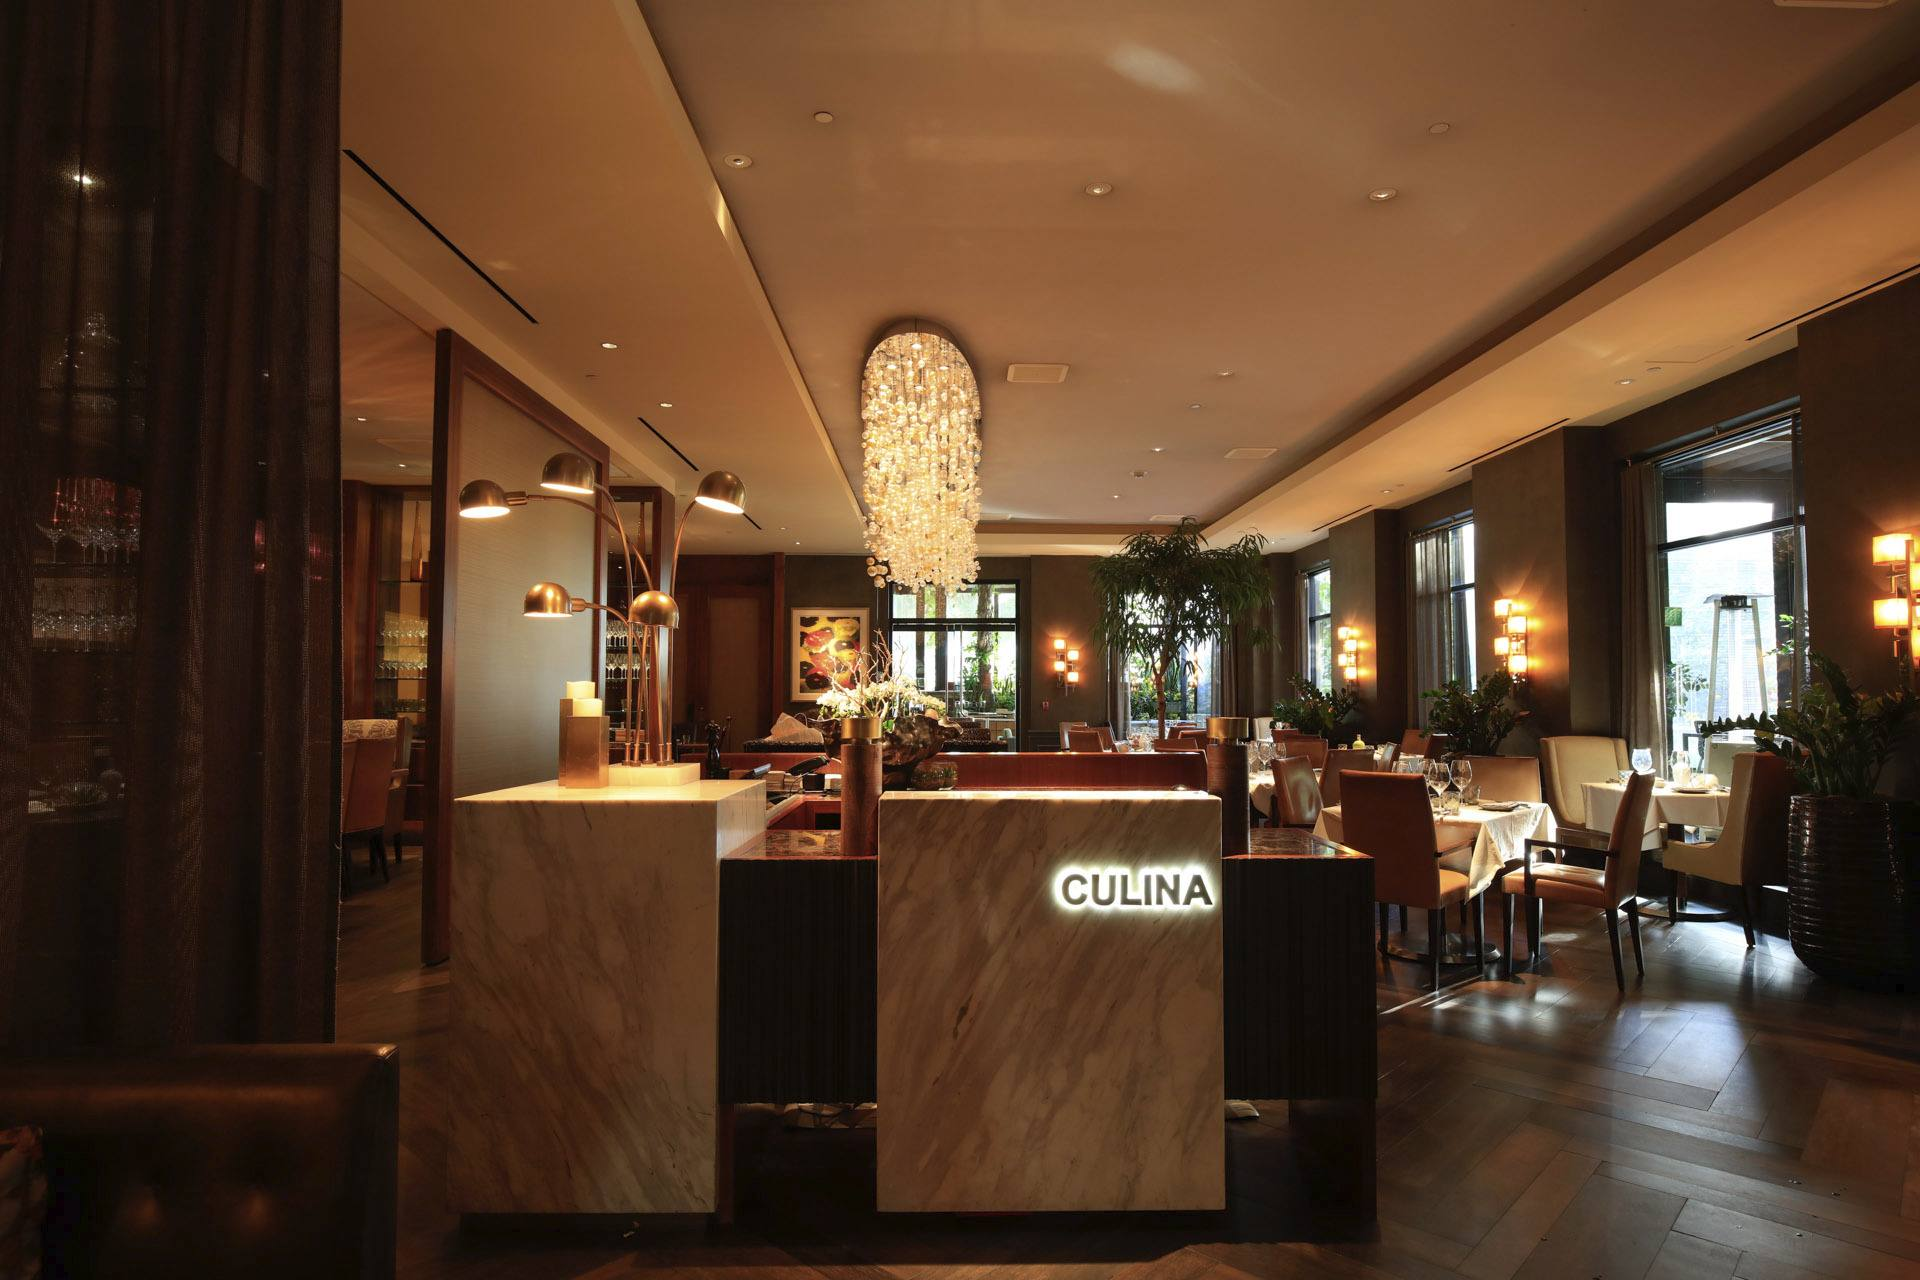 Culina at the Four Seasons Los Angeles at Beverly Hills | Photo: Yuri Hasegawa